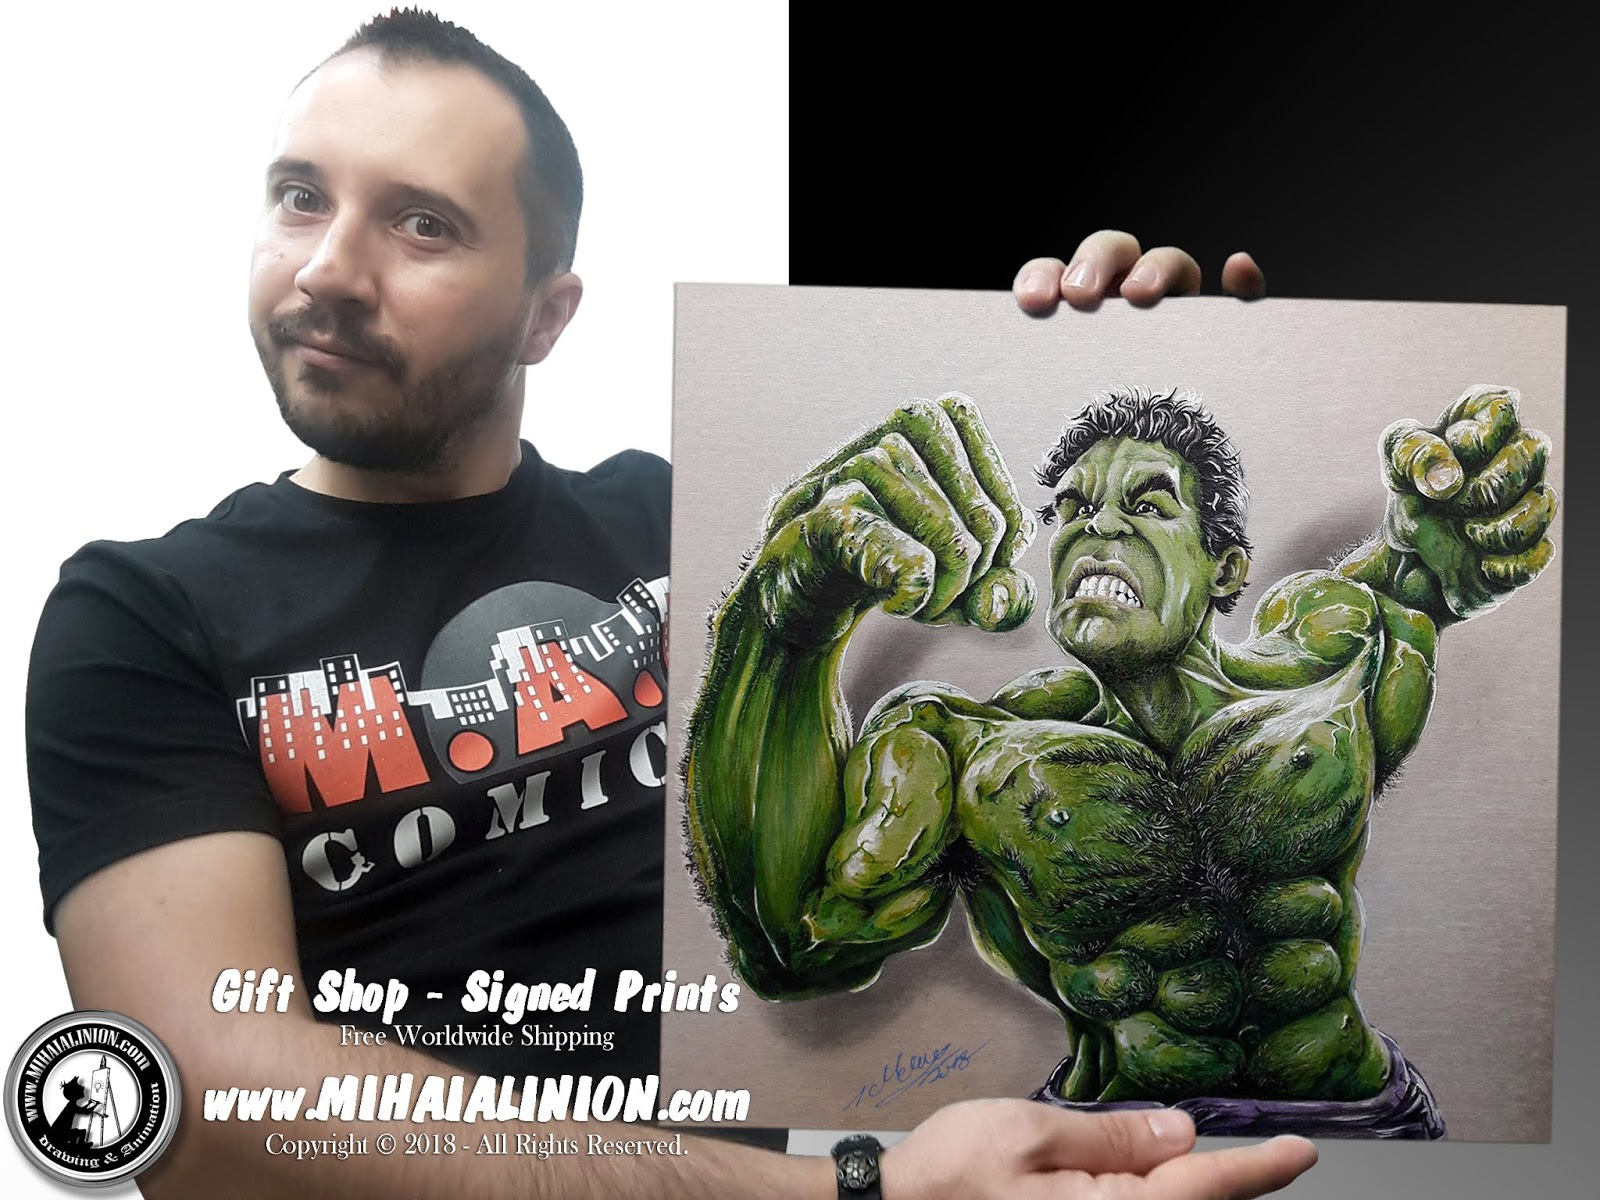 Drawing Hulk, Drawing The Incredible Hulk, Drawing Bruce Banner, Hulk Smash, Drawing Mark Ruffalo, Hulk The Movie, Thor Ragnarok, Marvel`s Incredible Hulk, Hulk ComicBook, How to draw Hulk, Hulk pencil drawing, Stan Lee, Avvengers, Jim Lee, Supervillain, Marvel Heroes, Jack Kirby, MAI Comics, Mihai Alin Ion, art by mihai alin ion, Drawing Marvel, Marvel versus DC, Marvel Comics, DC Comics, Gerry Conway, how to draw, artselfie, drawing ideas, free drawing lessons, drawing tutorial, art, dessin, disegno, dibujo, drawing Marvel heroes, drawing, illustration, painting, design, realistic 3d art, coloured pencils, www.mihaialinion.com, 2018, pencil drawing, tempera, acrilics paint, marker, gouache painting, mixed media, comics, comic book, caricature, portrait, cum sa desenezi, caricaturi mihai alin ion, caricaturi si portrete  la comanda, eveniment caricaturi, caricaturi la nunta, caricaturi la botez, caricaturi la majorat, desene pe pereti, desene pentru copii, ilustratie carte, benzi desenate, caricaturi, portrete, comanda caricaturi